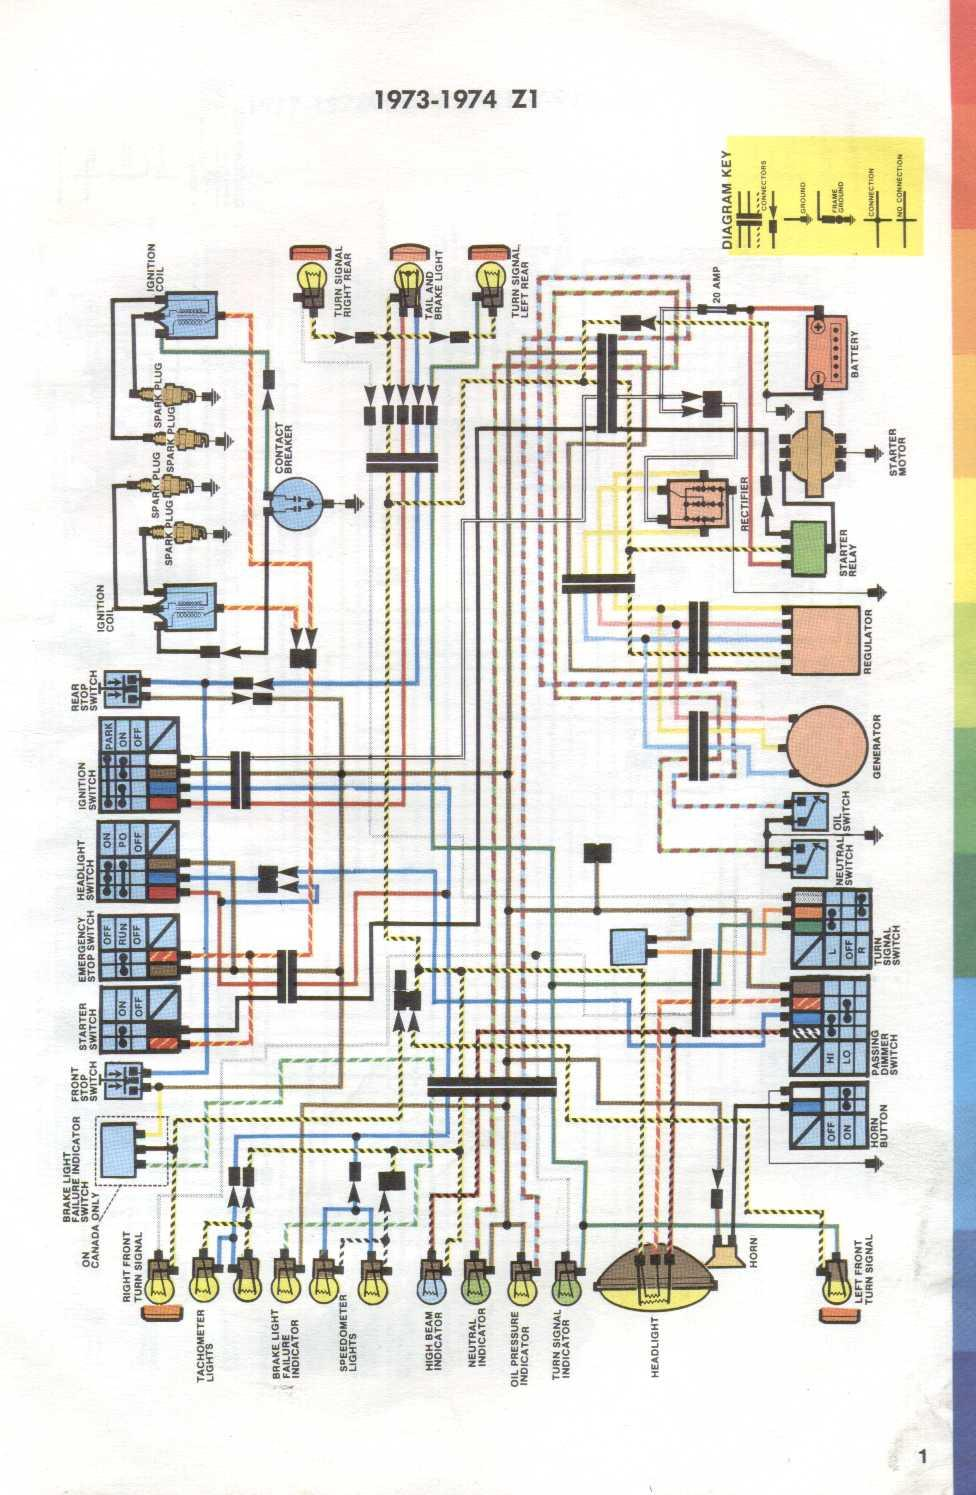 Japanese Wiring Diagram - All Diagram Schematics on